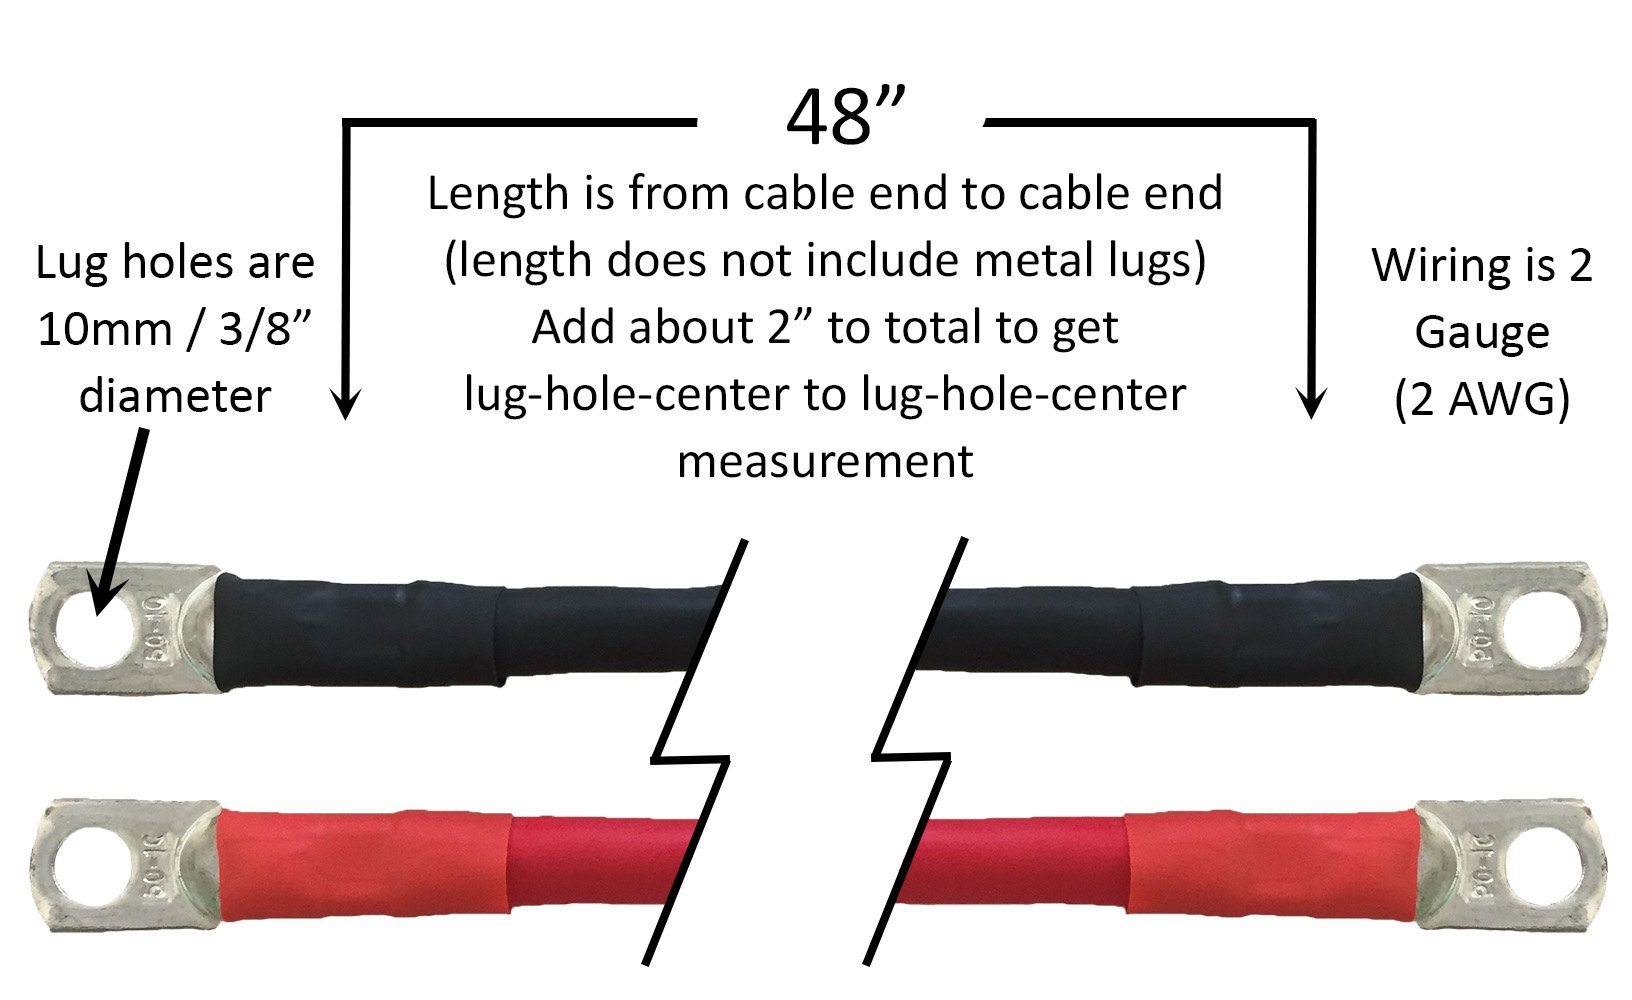 Truck Upfitters 48'' Pair of 2 AWG Black & Red Power Cables for Inverters, Solar Panels, Car, Truck, RV, and Marine Applications